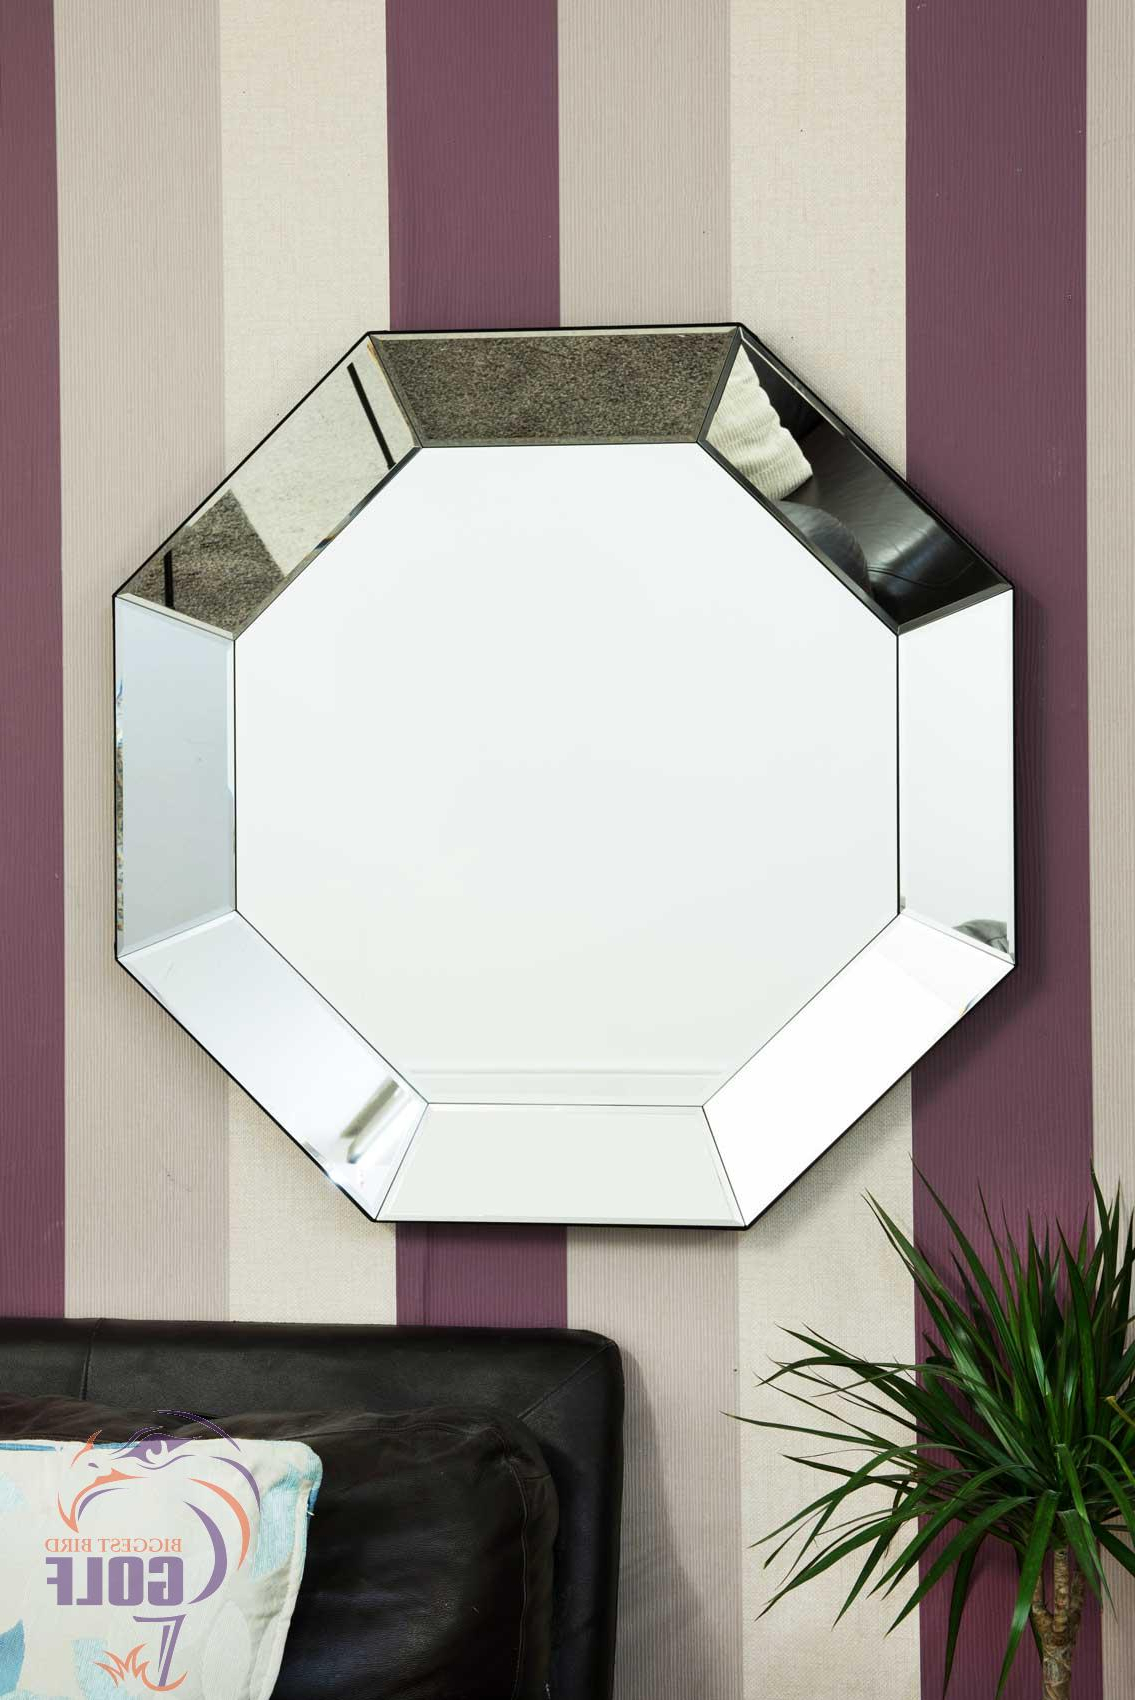 Details About Large Tray Effect All Mirror Glass Octagon Wall Mirror 90Cm Regarding Widely Used Glass Wall Mirrors (View 15 of 20)